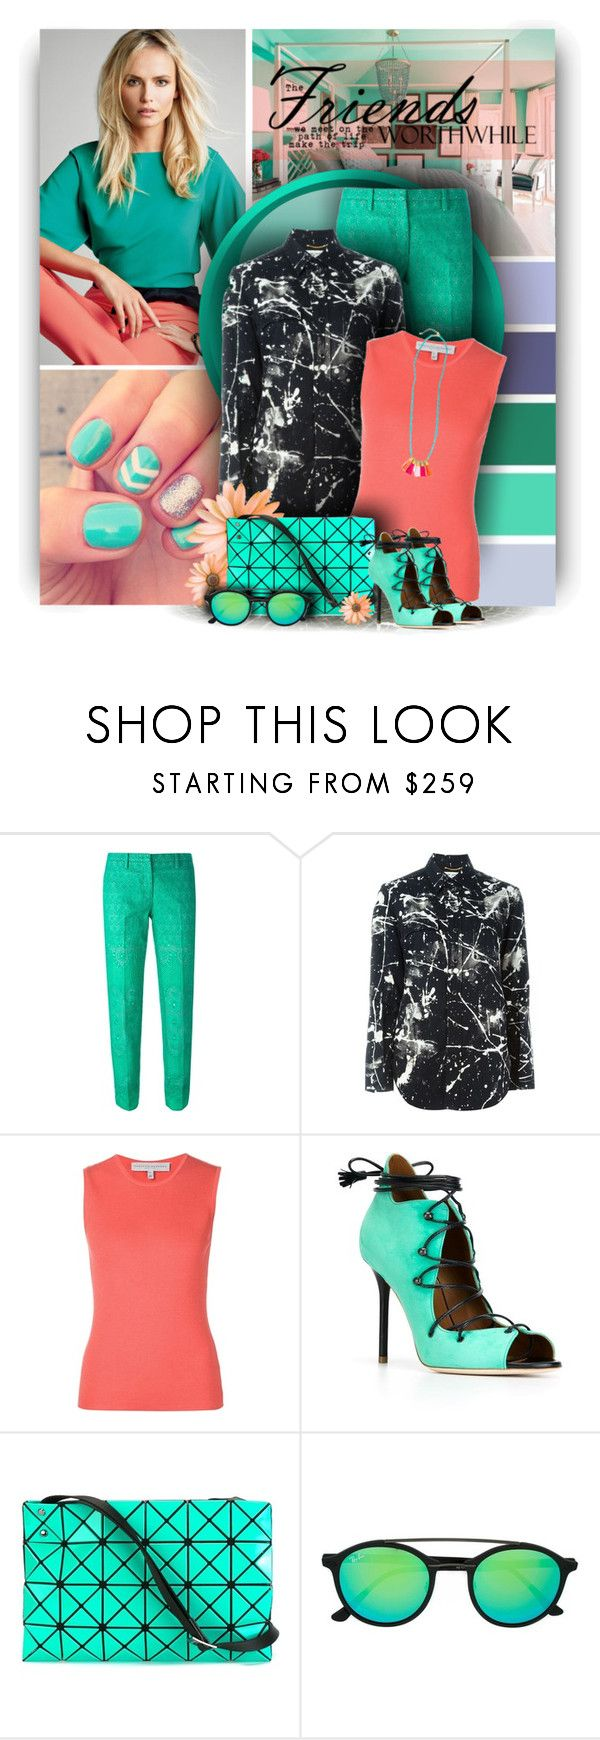 """Happy Weekend"" by christiana40 ❤ liked on Polyvore featuring N°21, Yves Saint Laurent, Carolina Herrera, Malone Souliers, Bao Bao by Issey Miyake and Ray-Ban"